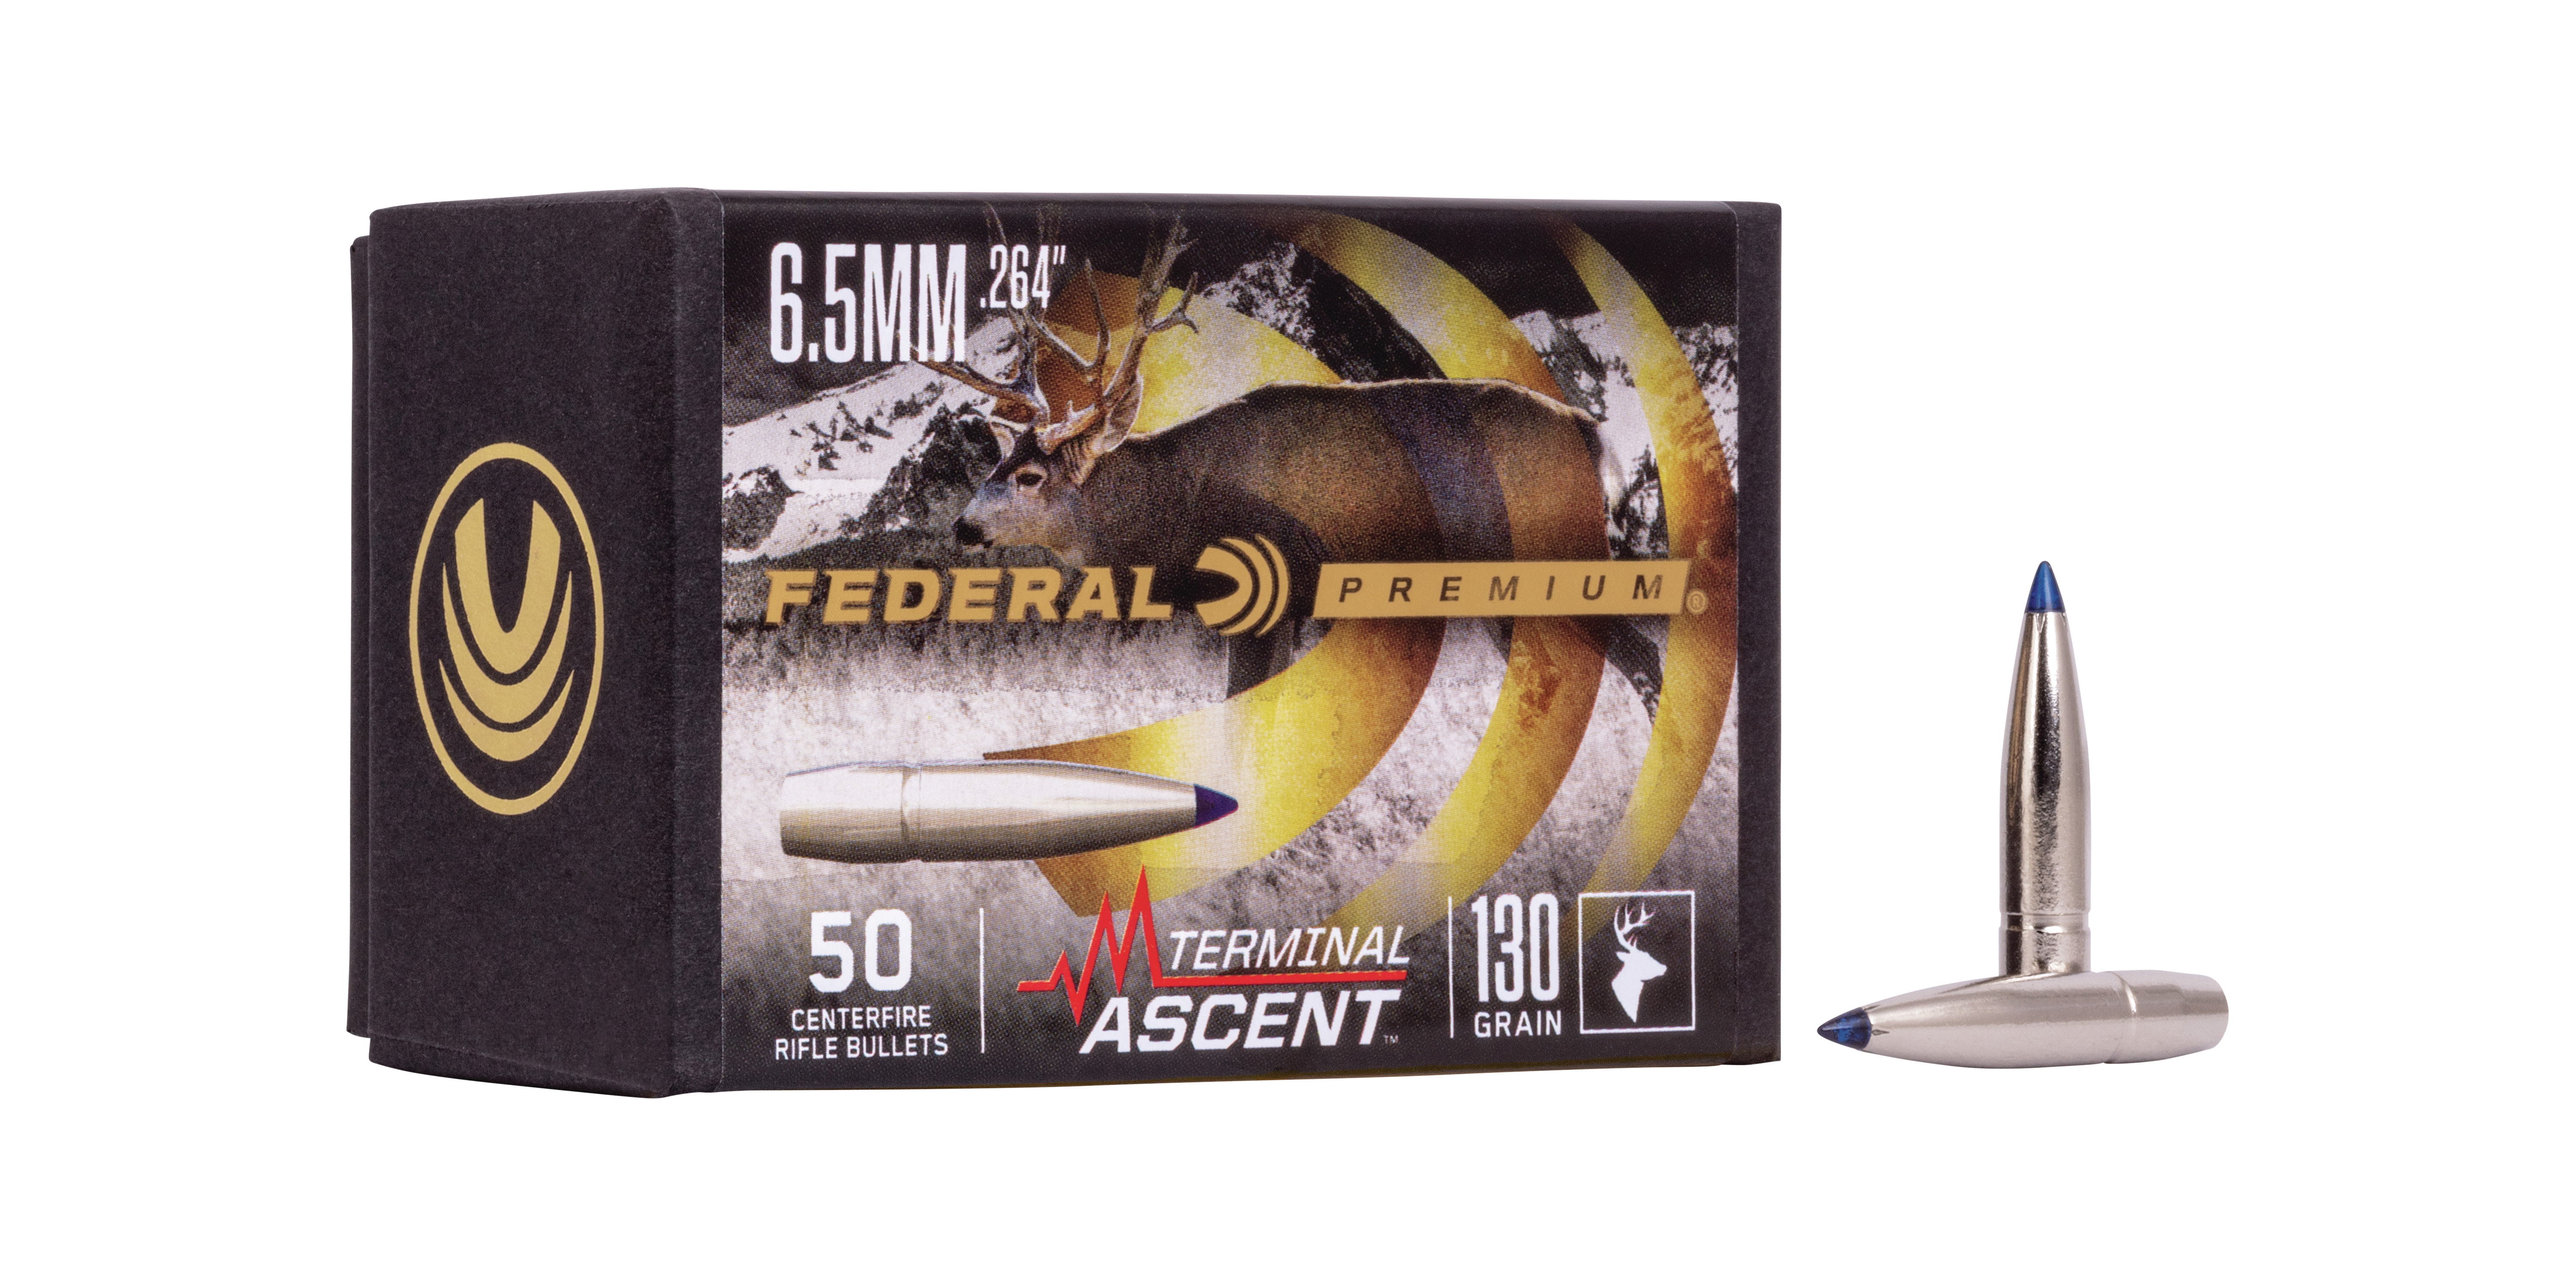 Federal Premium's NEW Terminal Ascent Bullet Sold as a Reloading Component